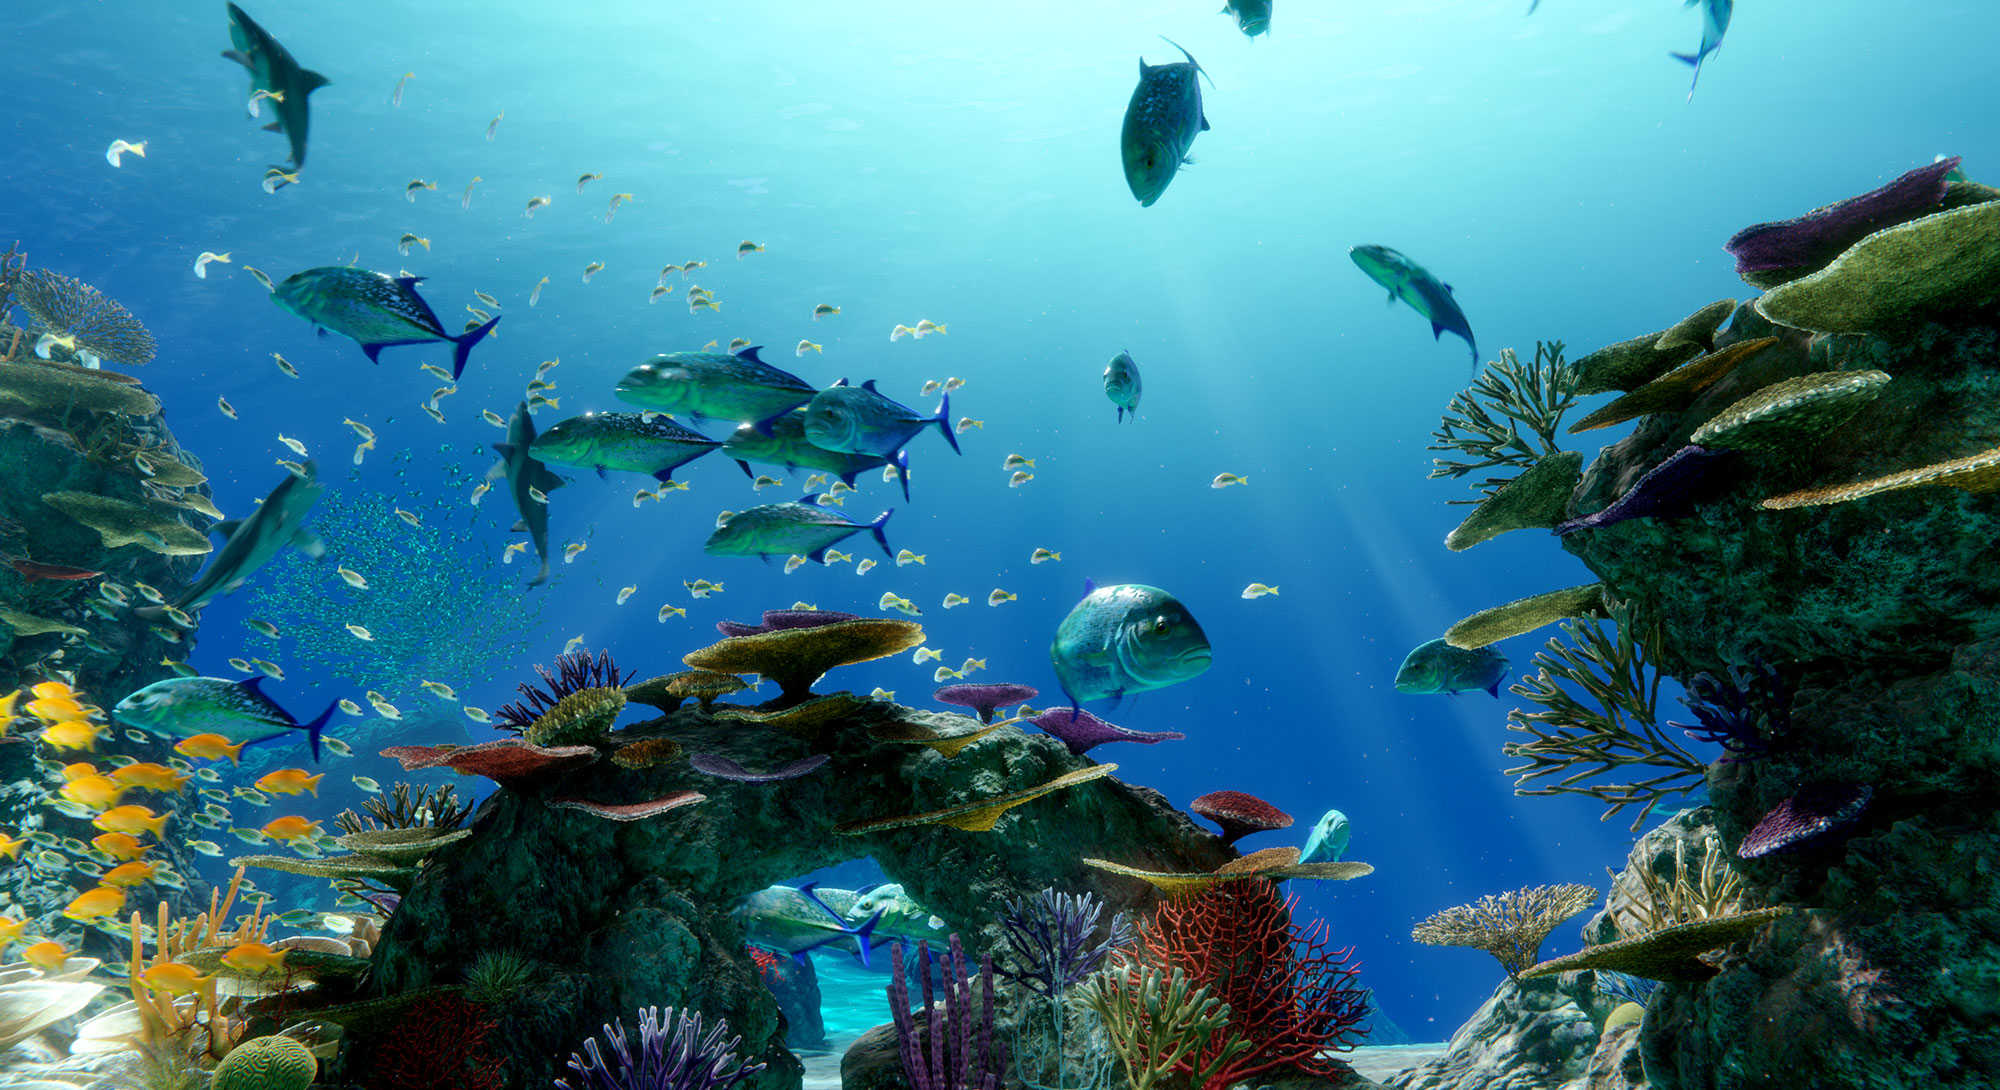 A 3D digital marine ecosystem of the Great Barrier Reef